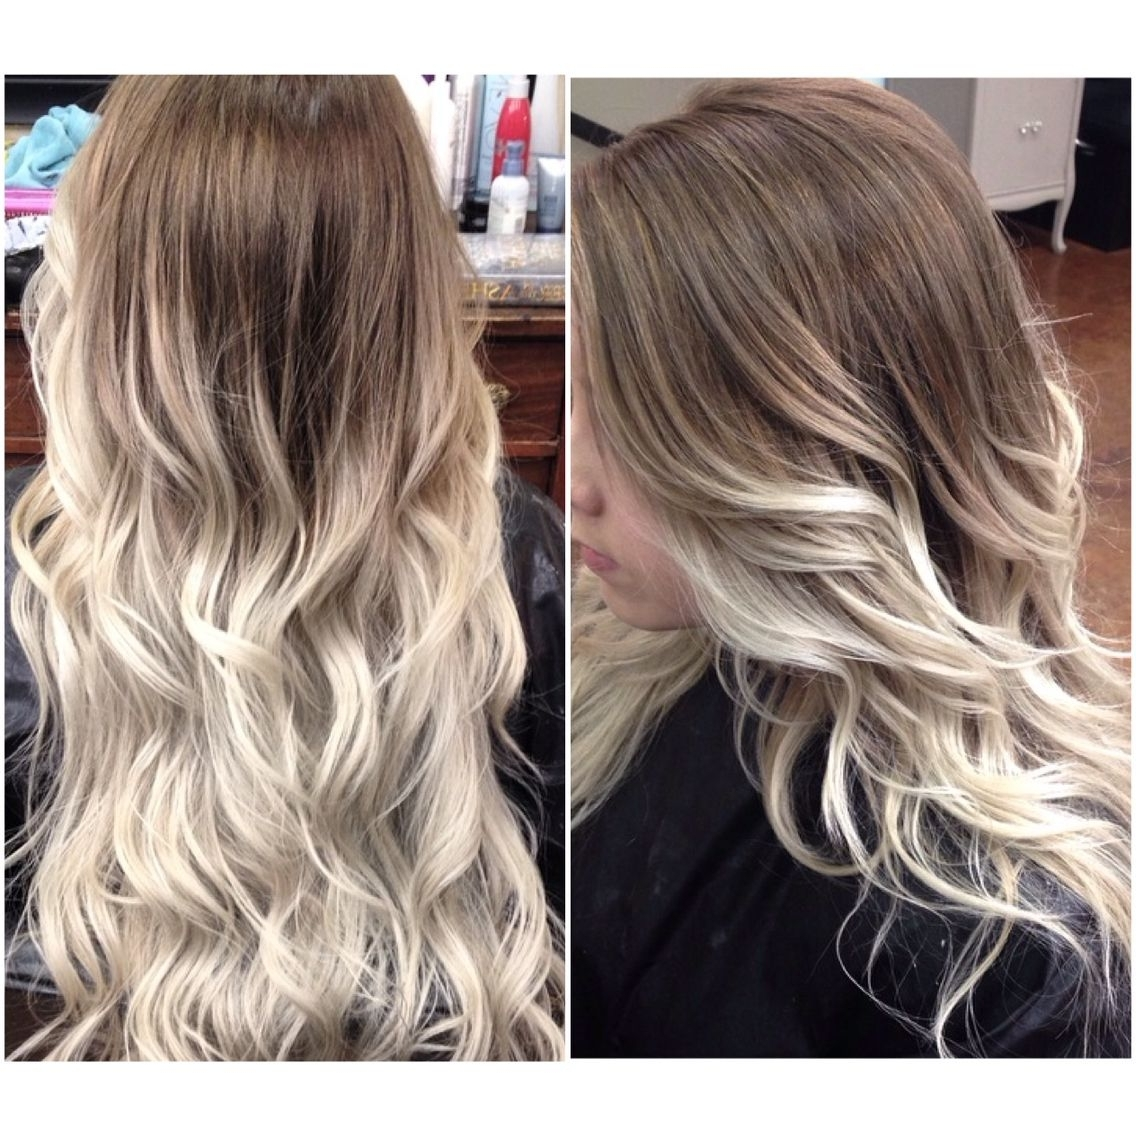 Icy Blonde Ombre! #icyblonde #ashblonde #balayge #ombre (View 7 of 20)